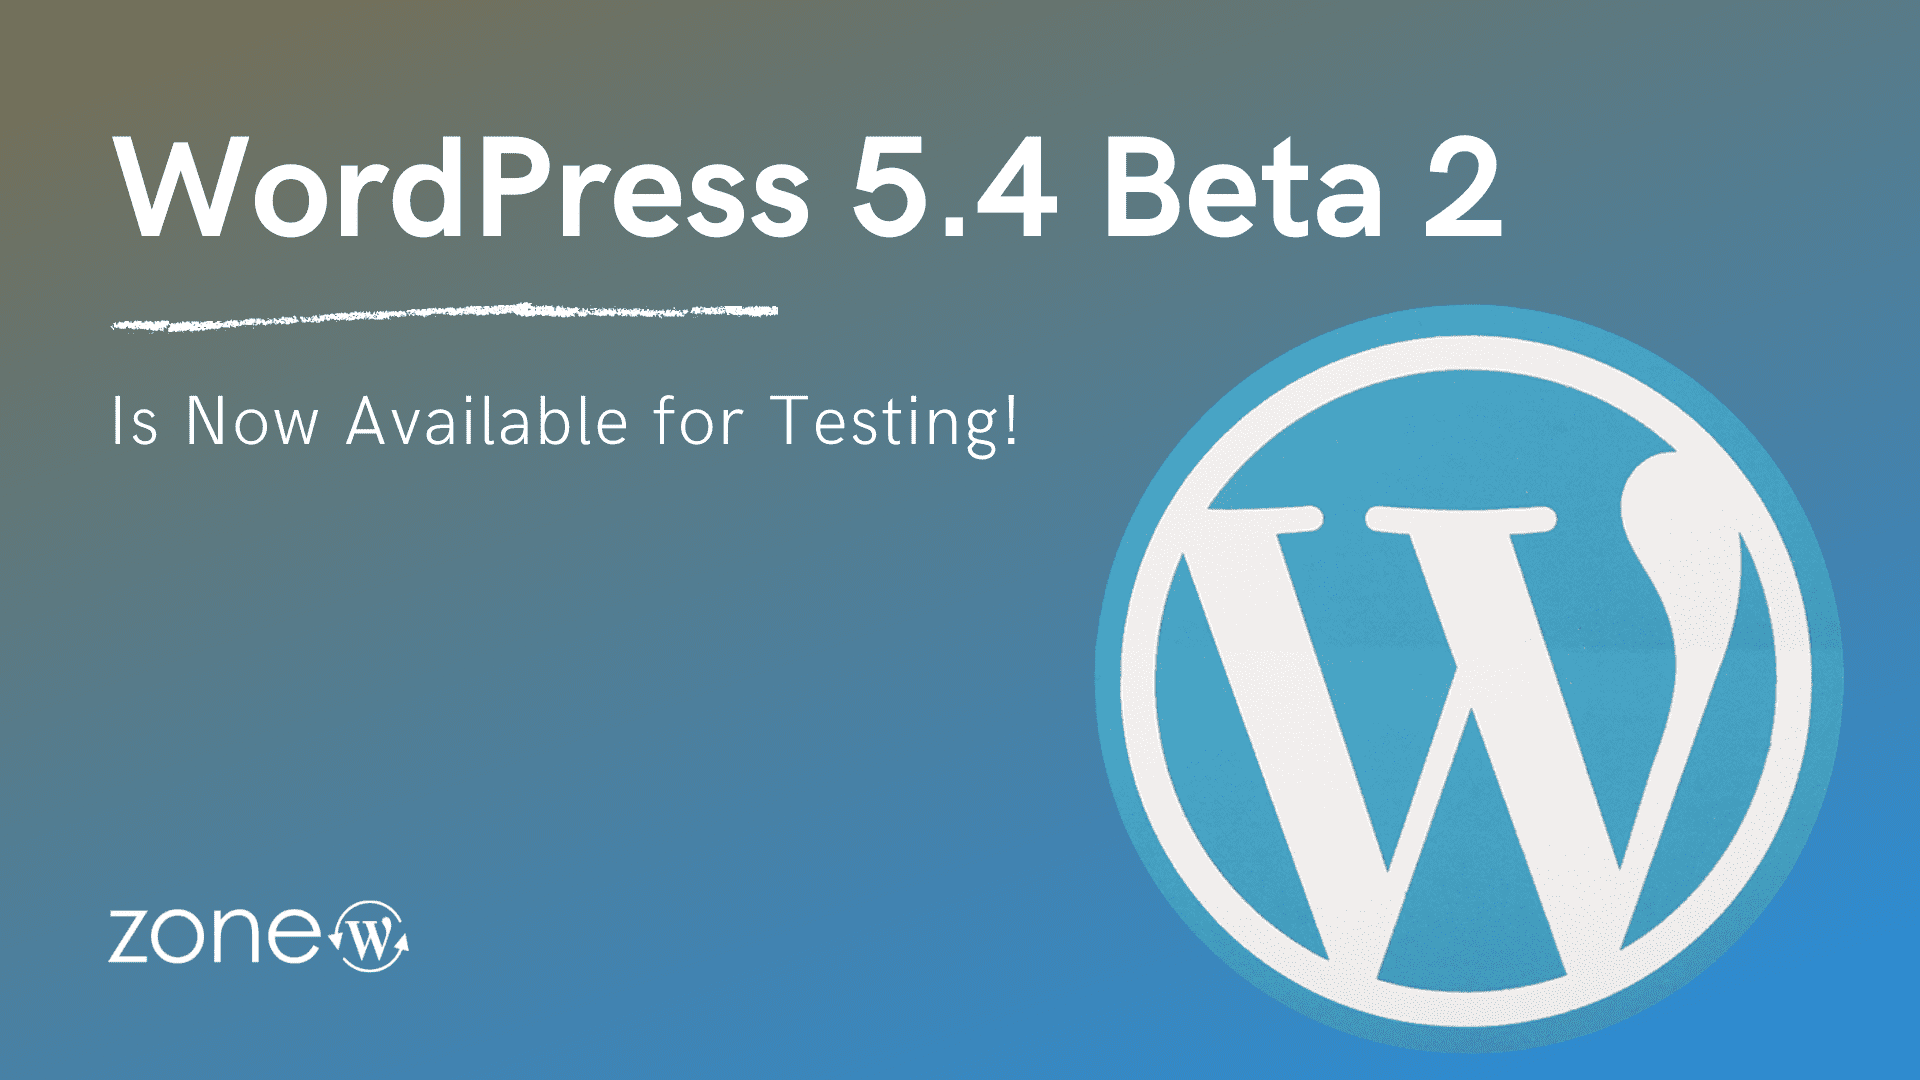 WordPress 5.4 Beta 2 Is Now Available for Testing!